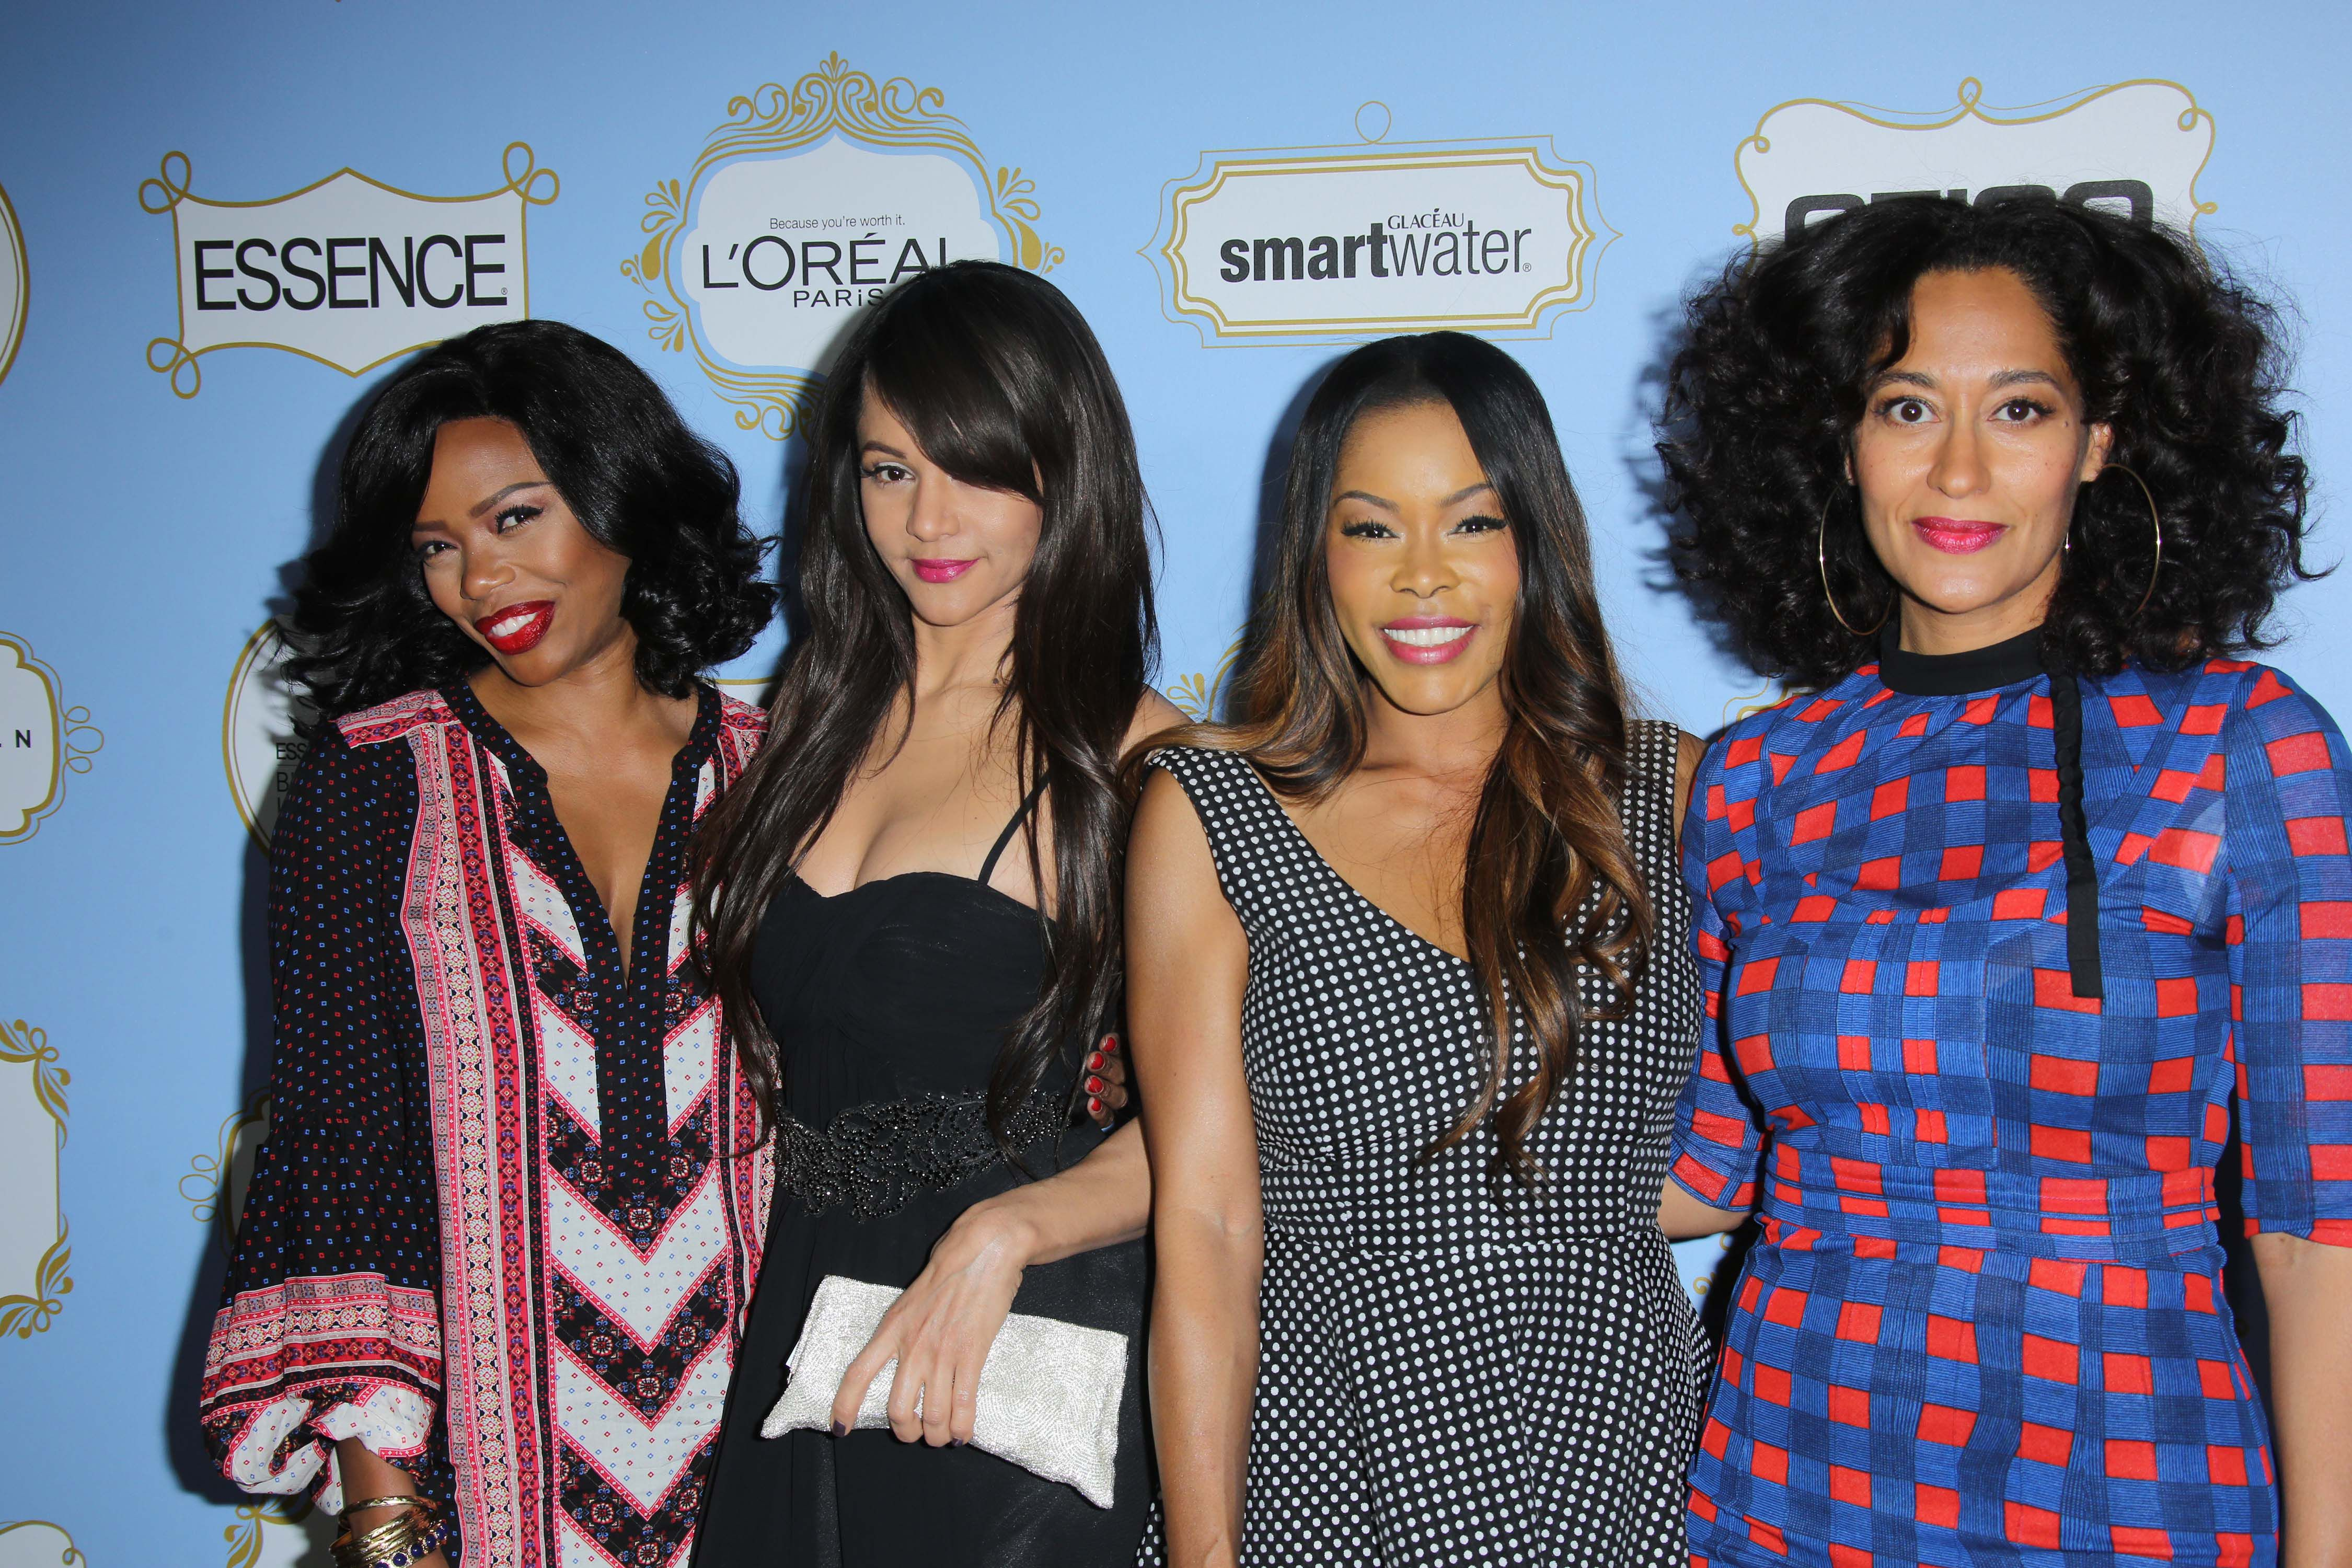 Cast of girlfriends on bet file viewer lite 1-3 2-4 betting system